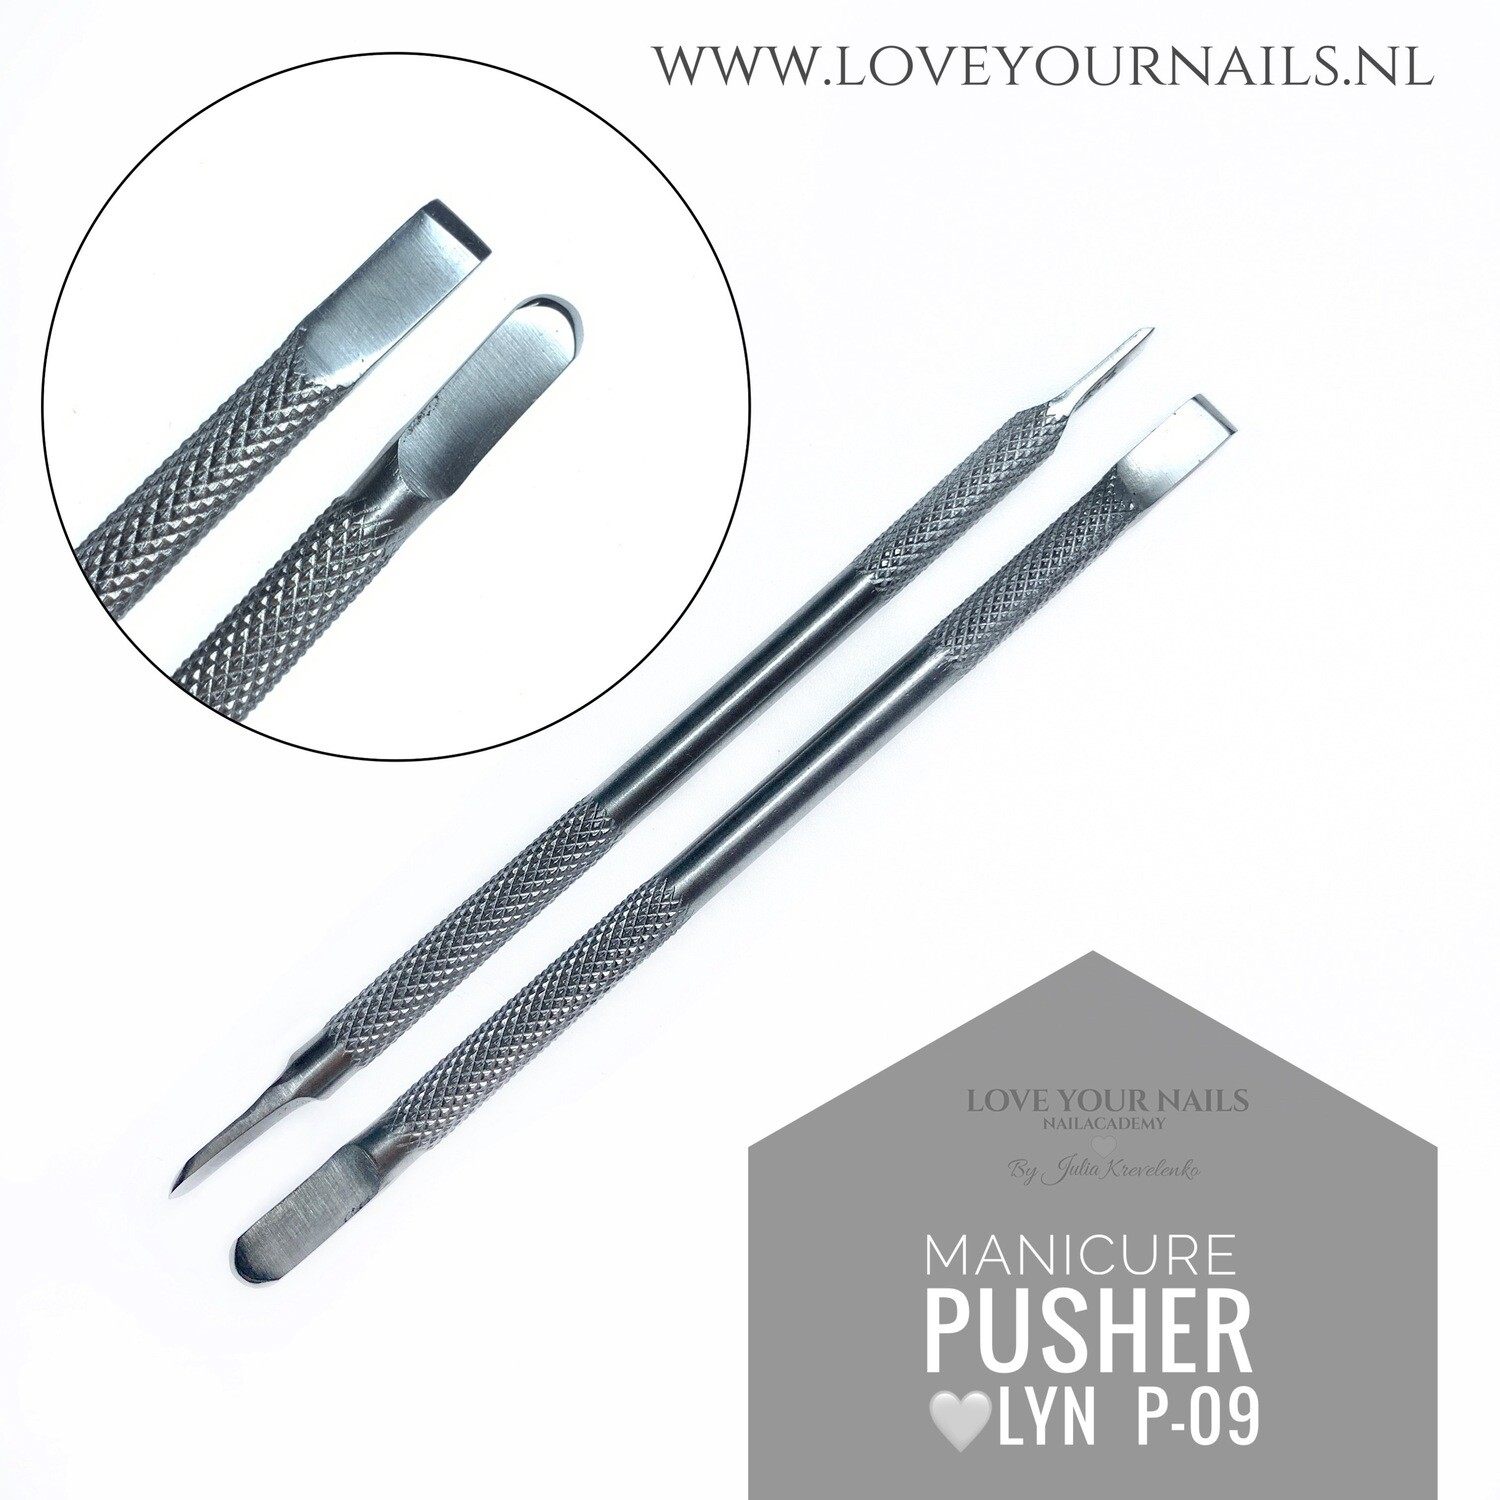 EXPERT Manicure pusher P-09